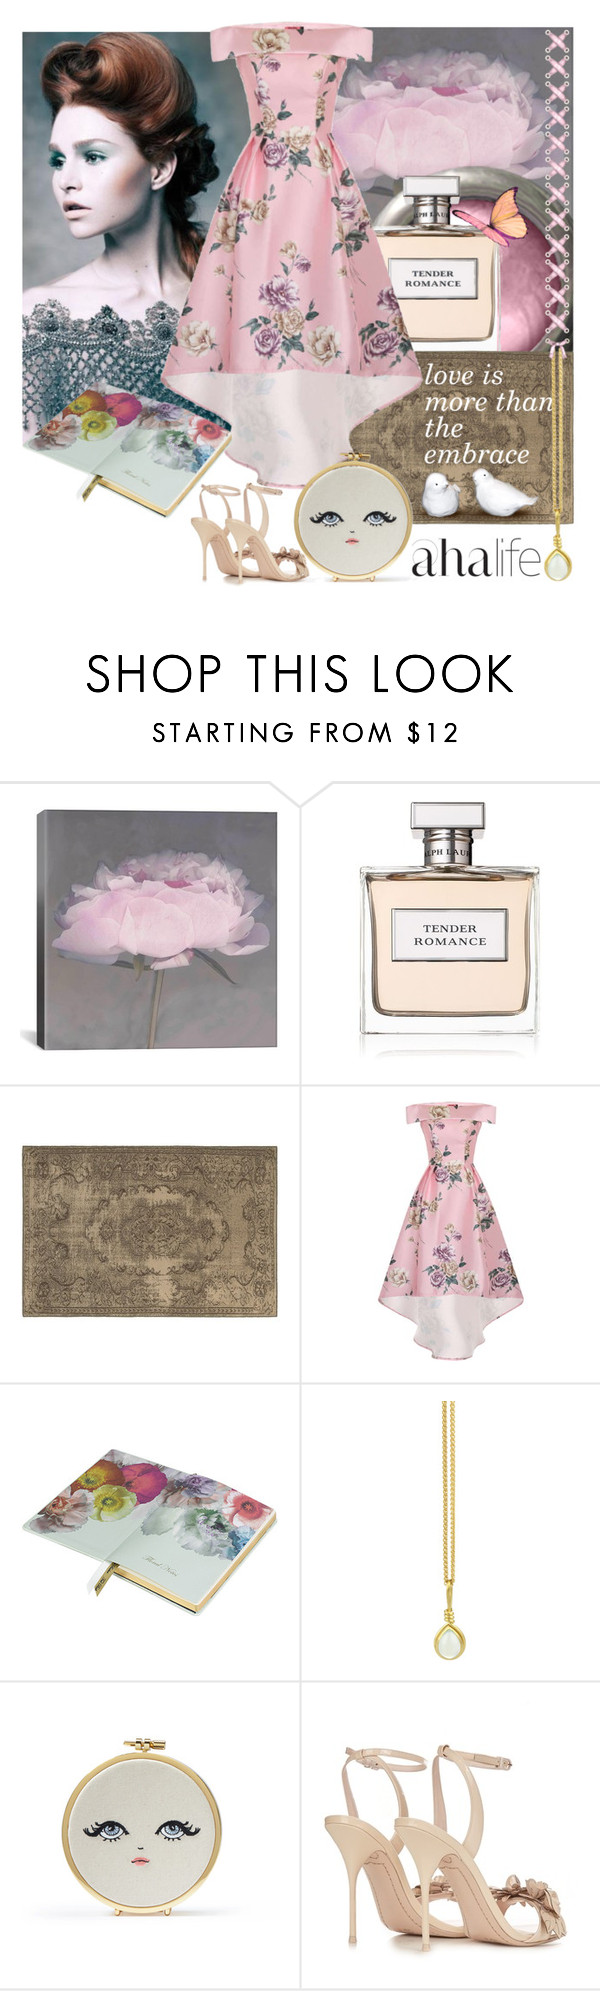 """Sometimes life is so busy, we forget the world around us"" by linda-caricofe ❤ liked on Polyvore featuring iCanvas, Ralph Lauren, Oriental Weavers, Chi Chi, Ted Baker, Prism Design and Sophia Webster"